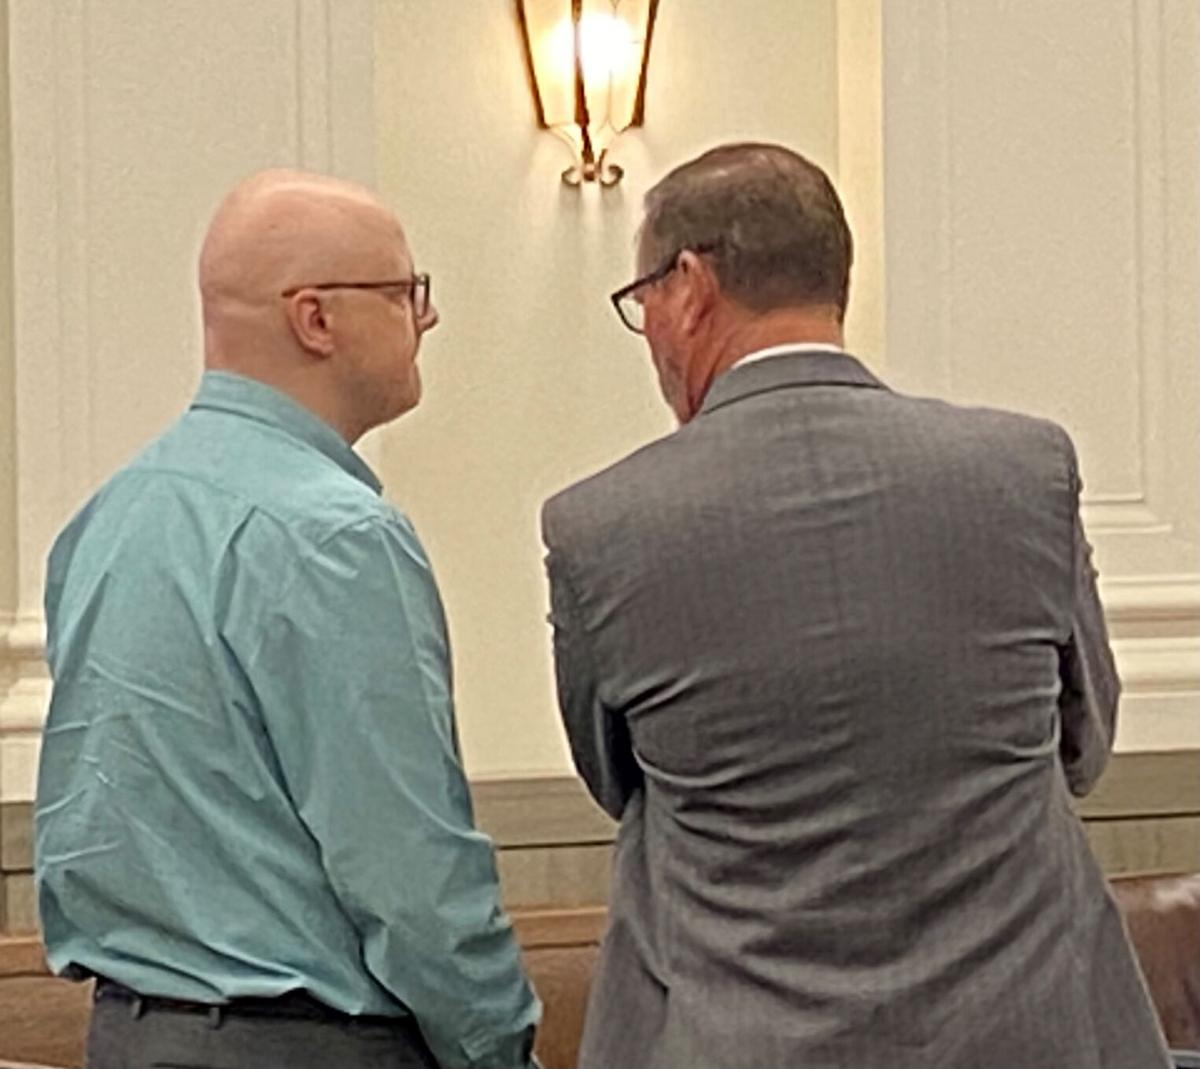 Autopsy focus Friday in Keith Allen trial as testimony wraps for week